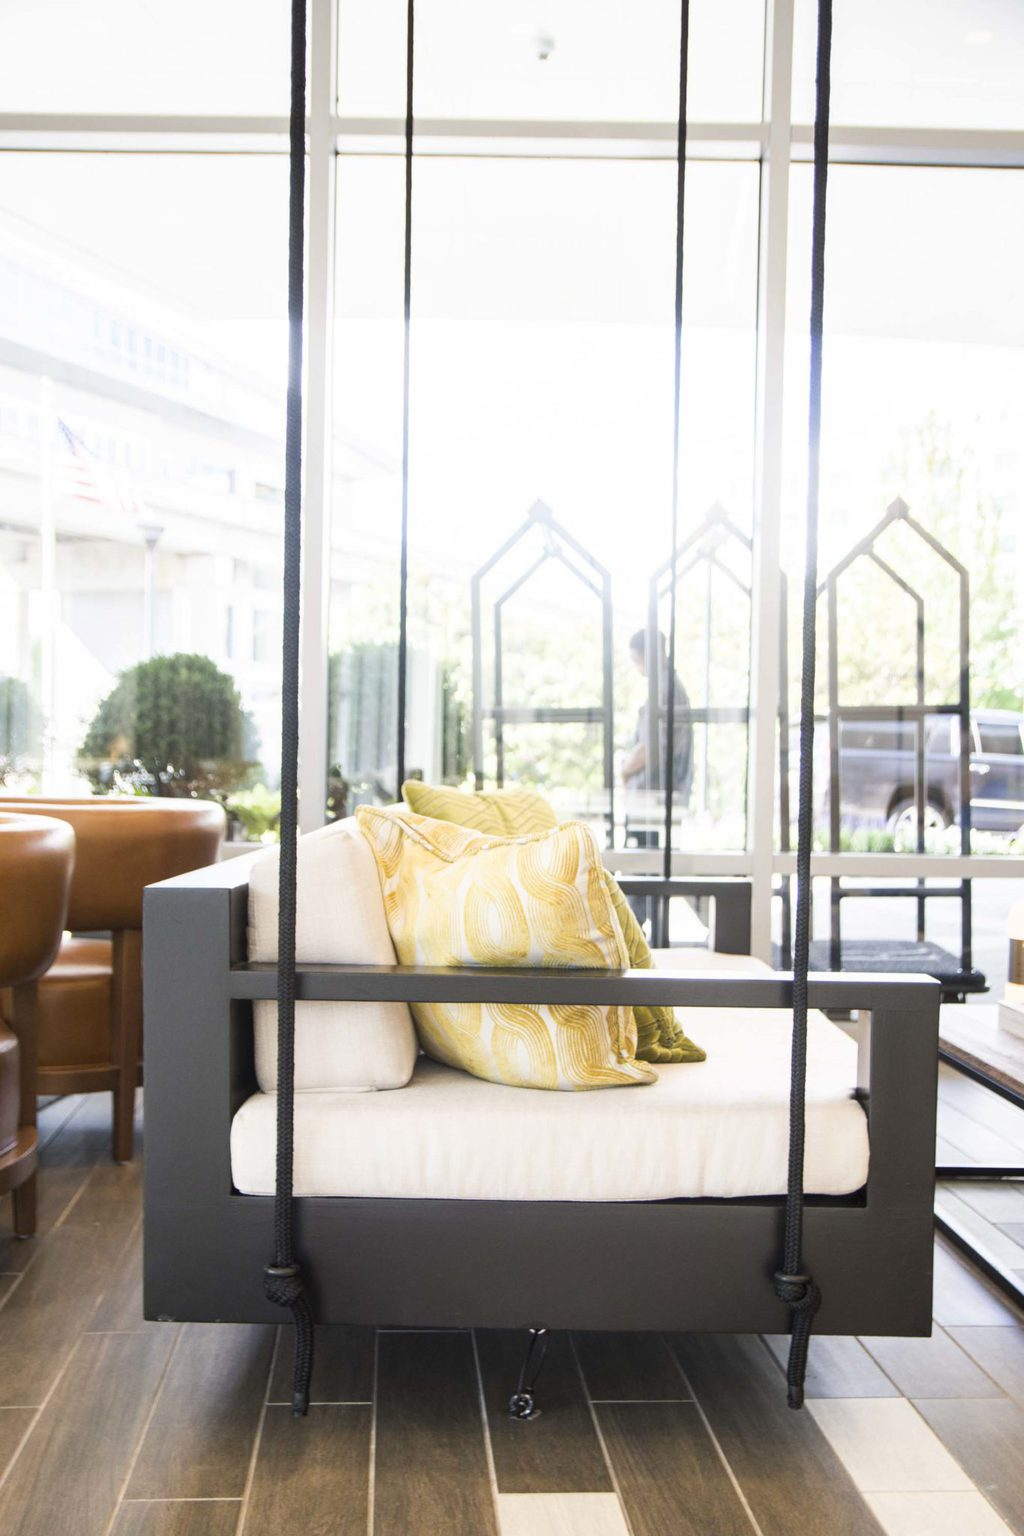 Hanging swing daybed in modern hotel lobby in the Renaissance airport hotel Atlanta on Thou Swell @thouswellblog